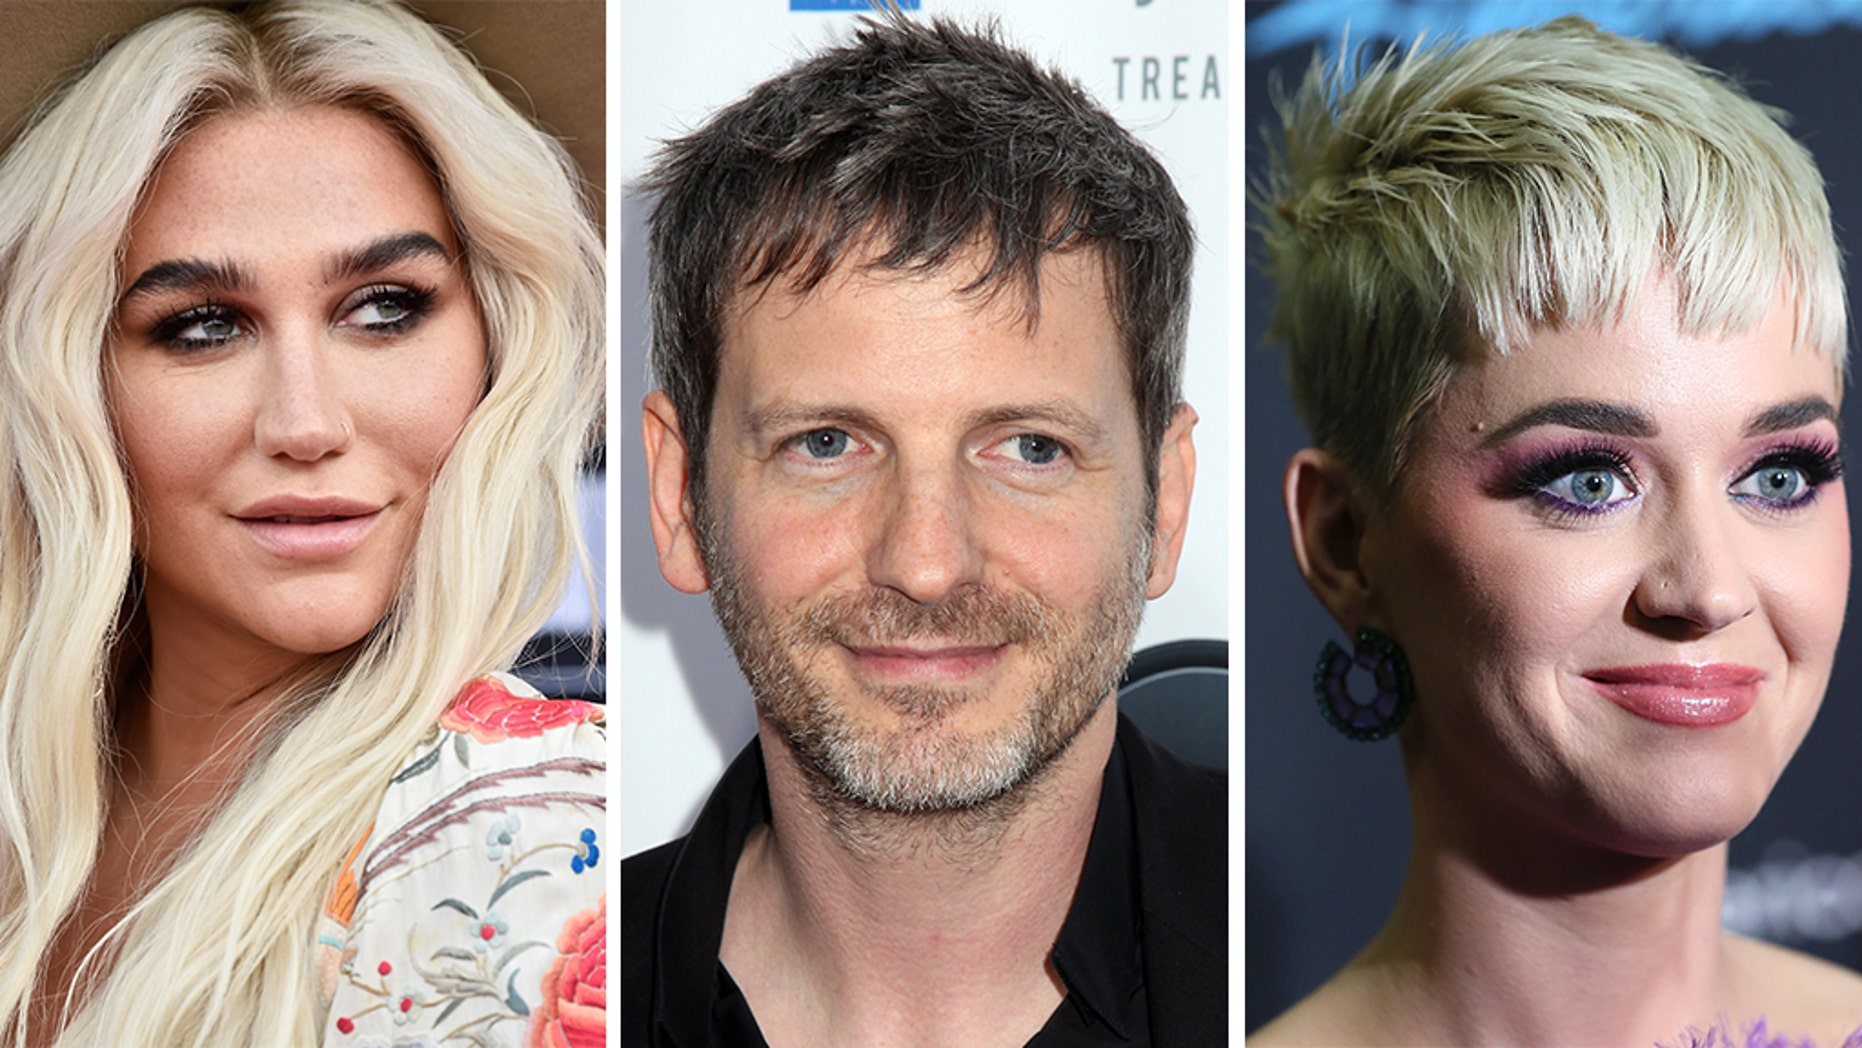 Kesha reportedly accused Dr. Luke of raping Katy Perry.